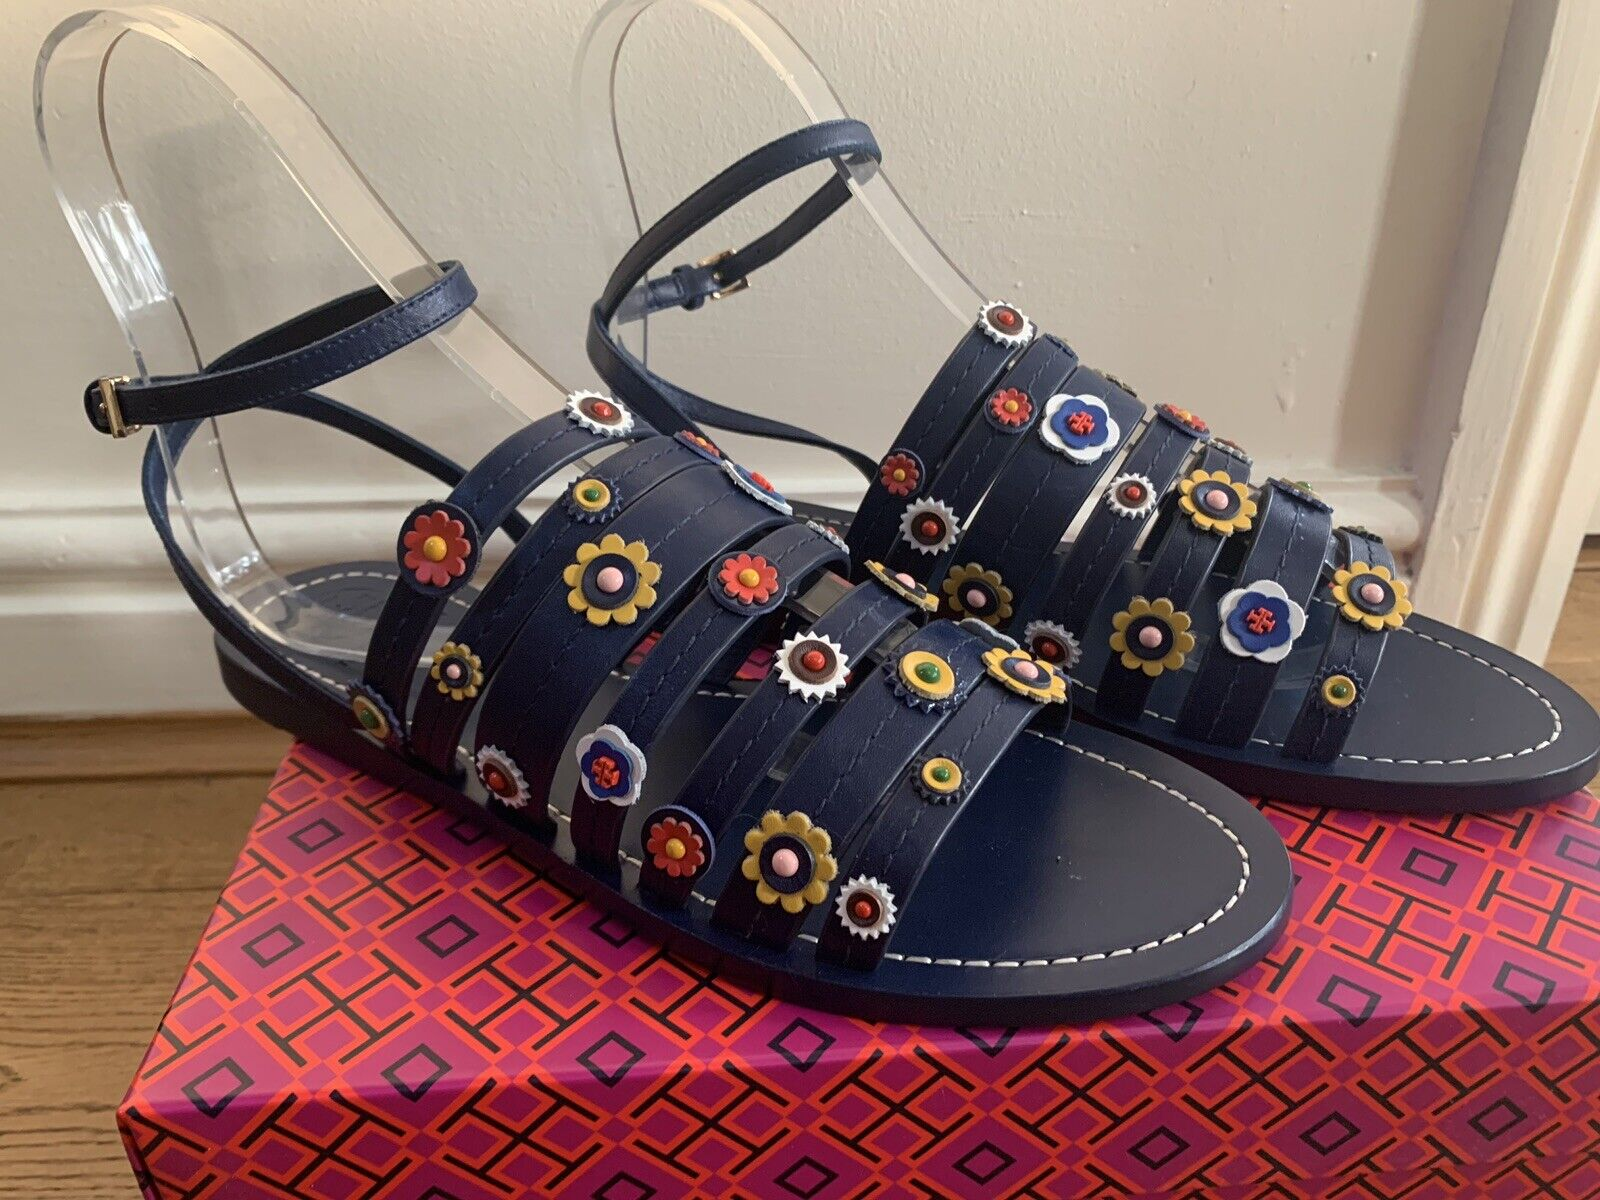 BN TORY BURCH MARGUERITE FLORAL FLAT LEATHER SANDALS IN NAVY SIZE UK 7.5 US 10